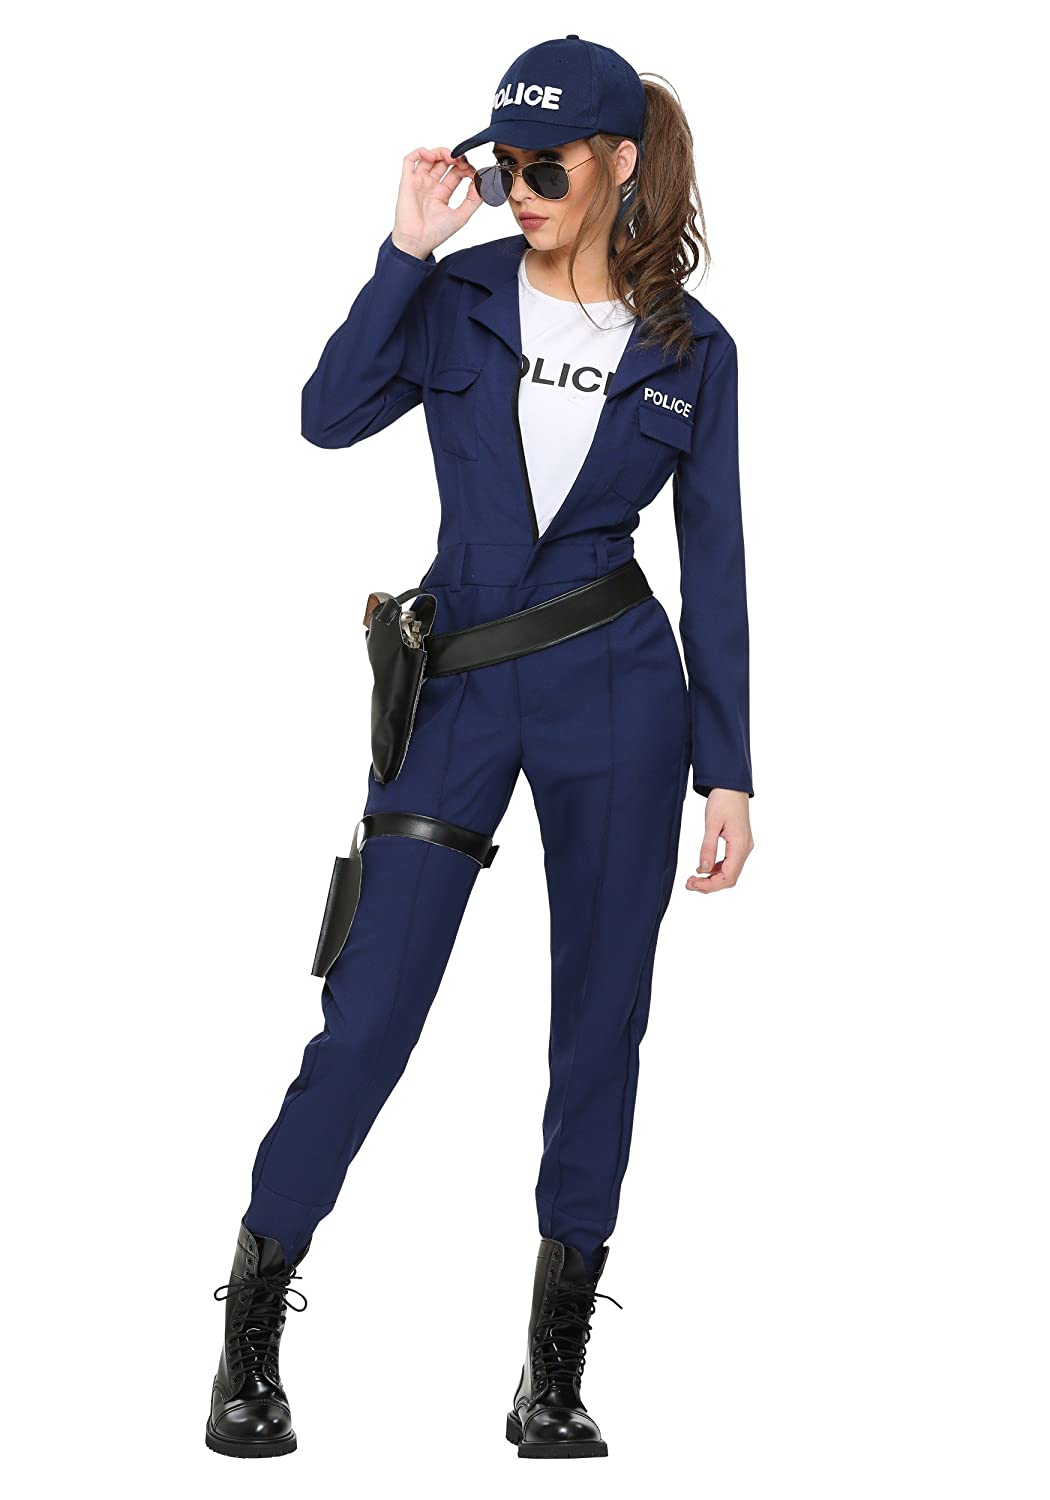 Fun Costumes Women's Tactical Cop Police Officer Costume